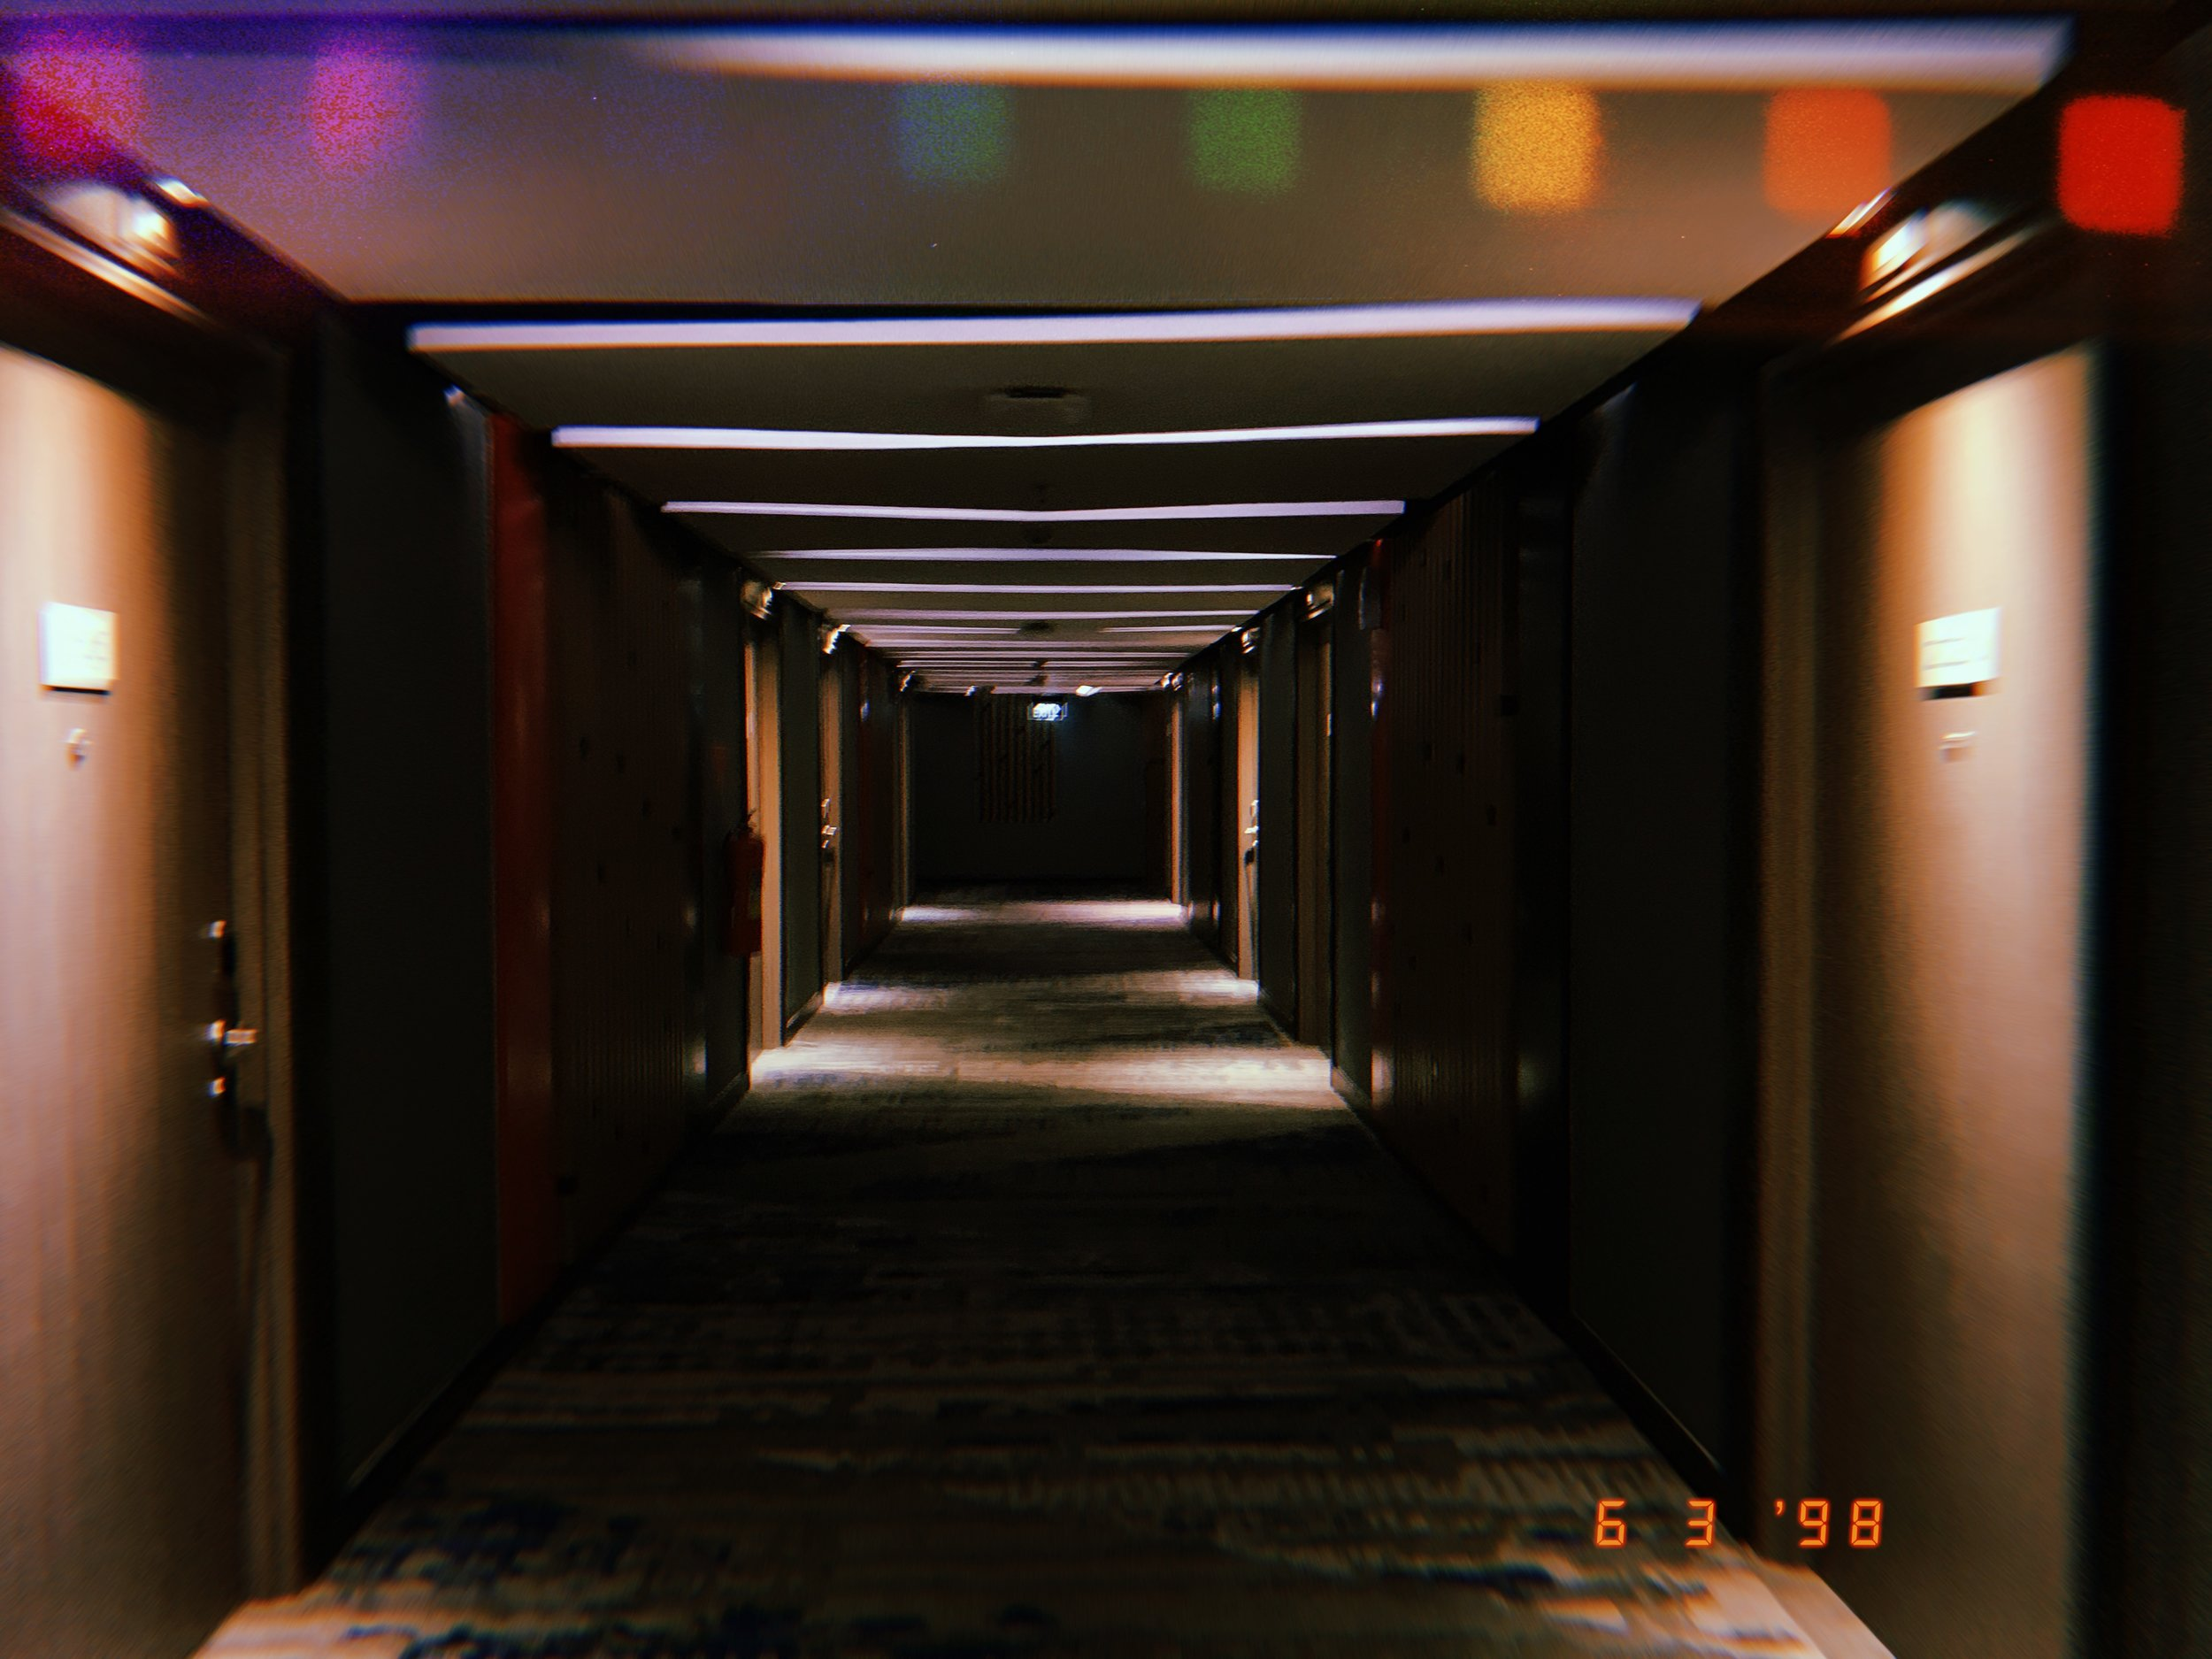 Hallway at Novotel Bali/Denpasar.. idk it felt nostalgic af & I like how this pic came out..